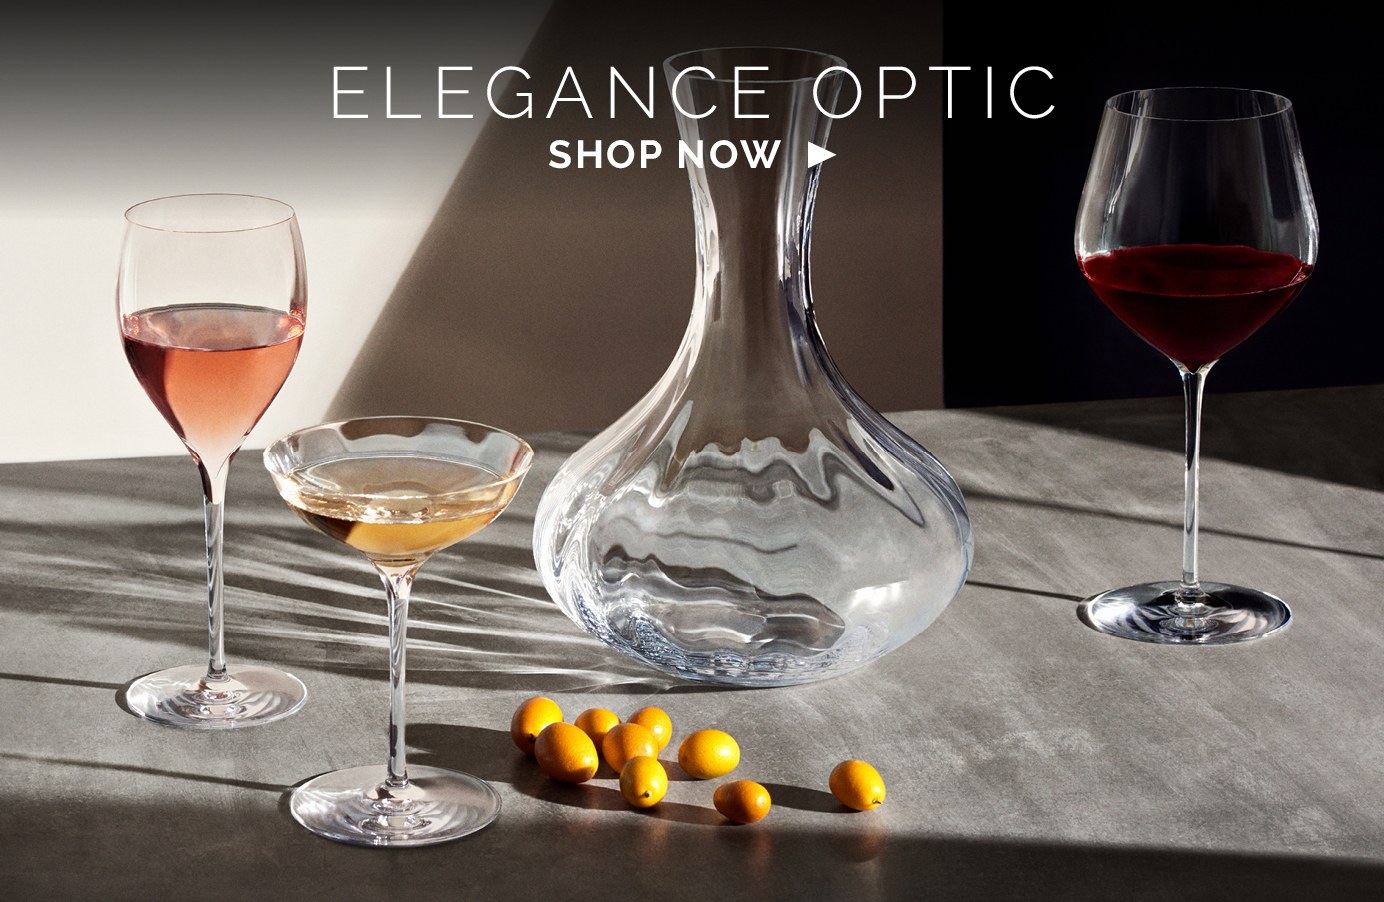 Elegance Optic